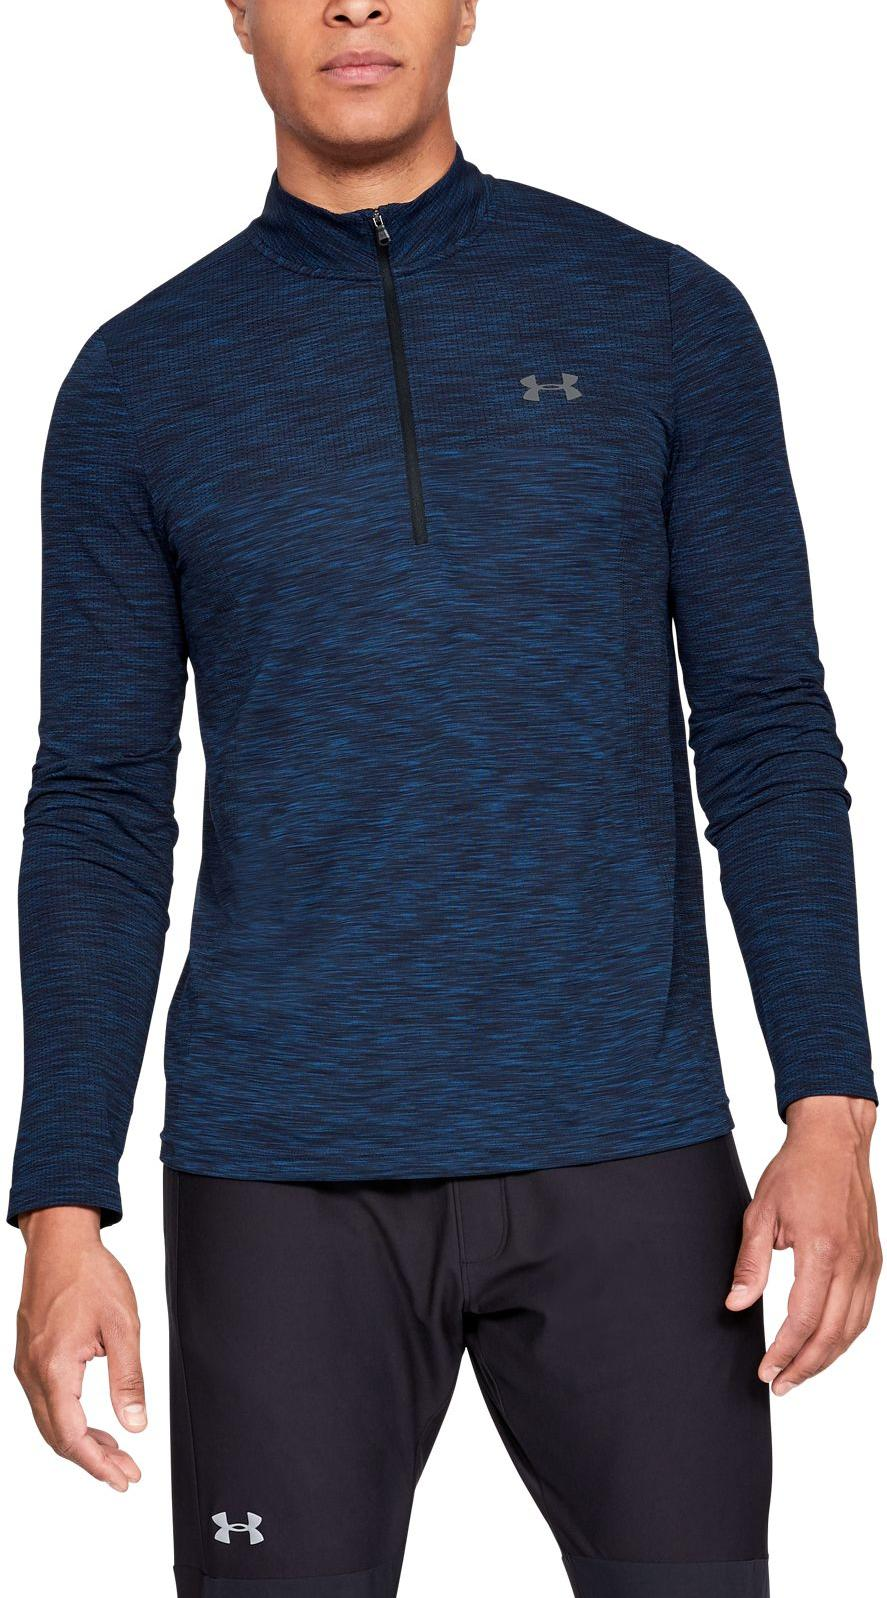 Under Armour Vanish Seamless 1/2 Zip Hosszú ujjú póló